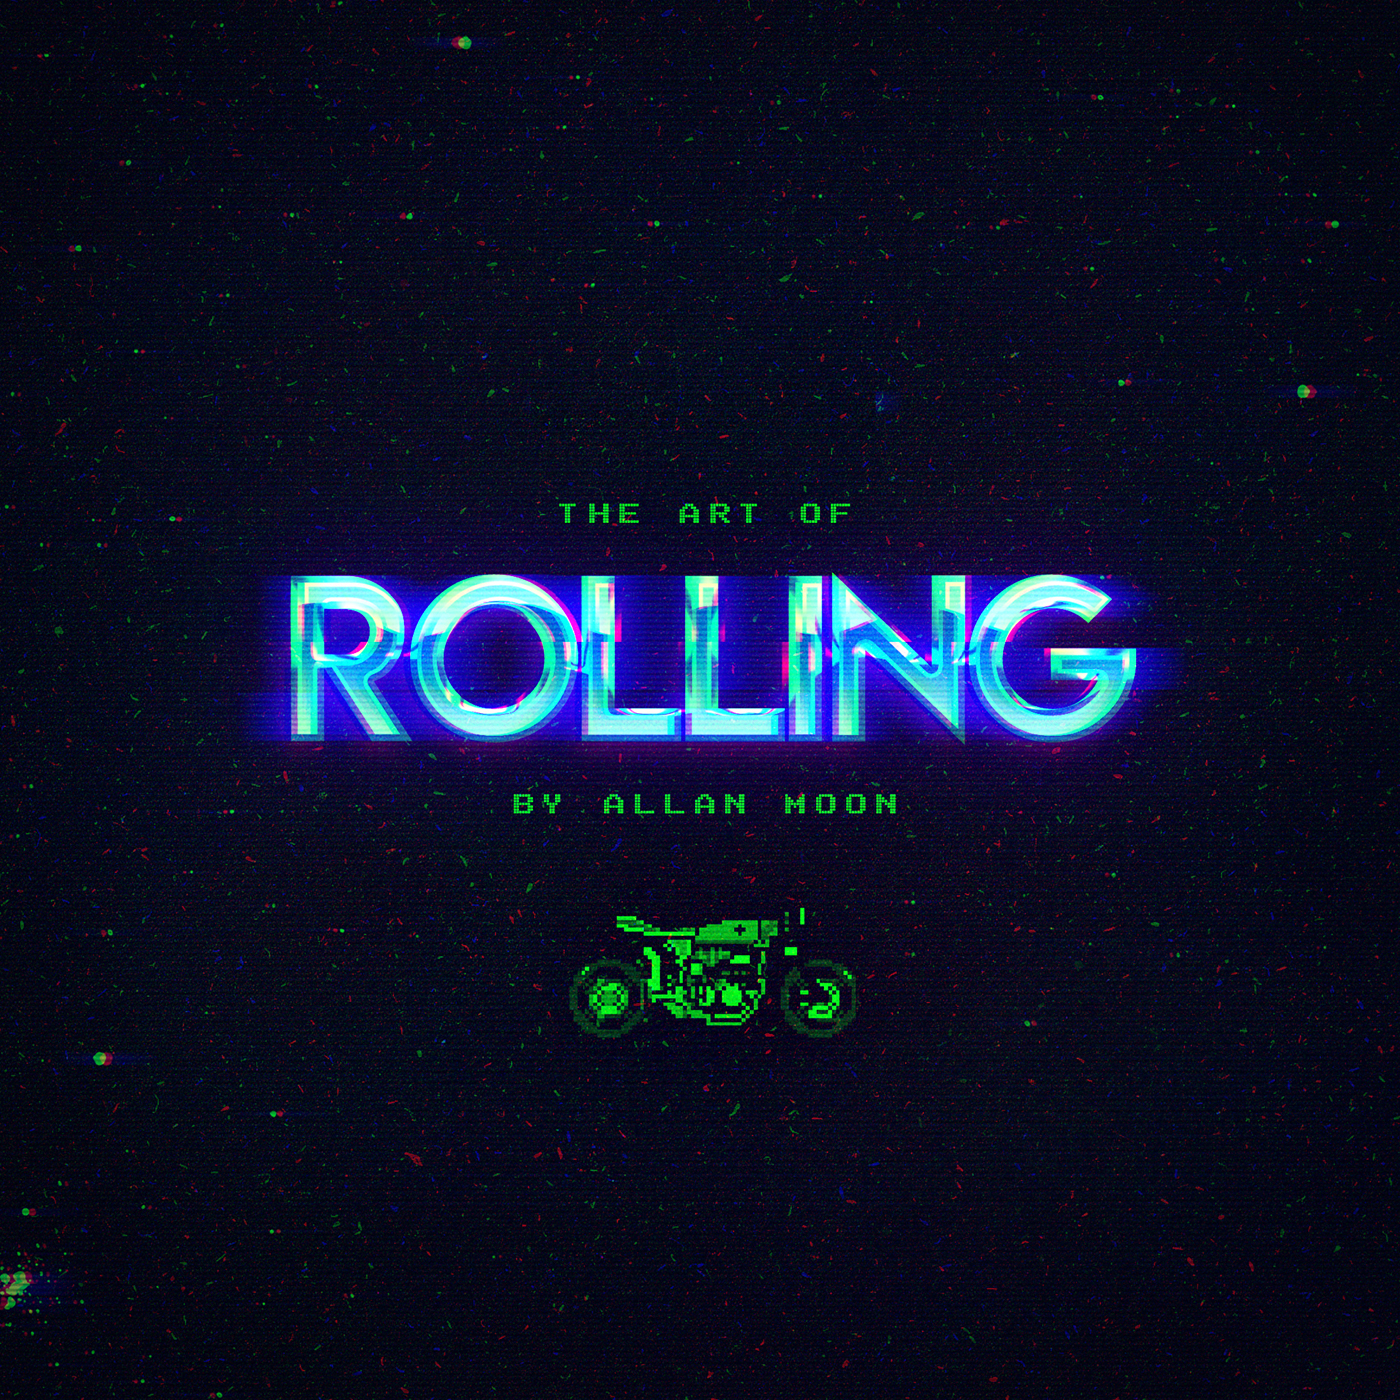 Allan Moon | The Art of Rolling